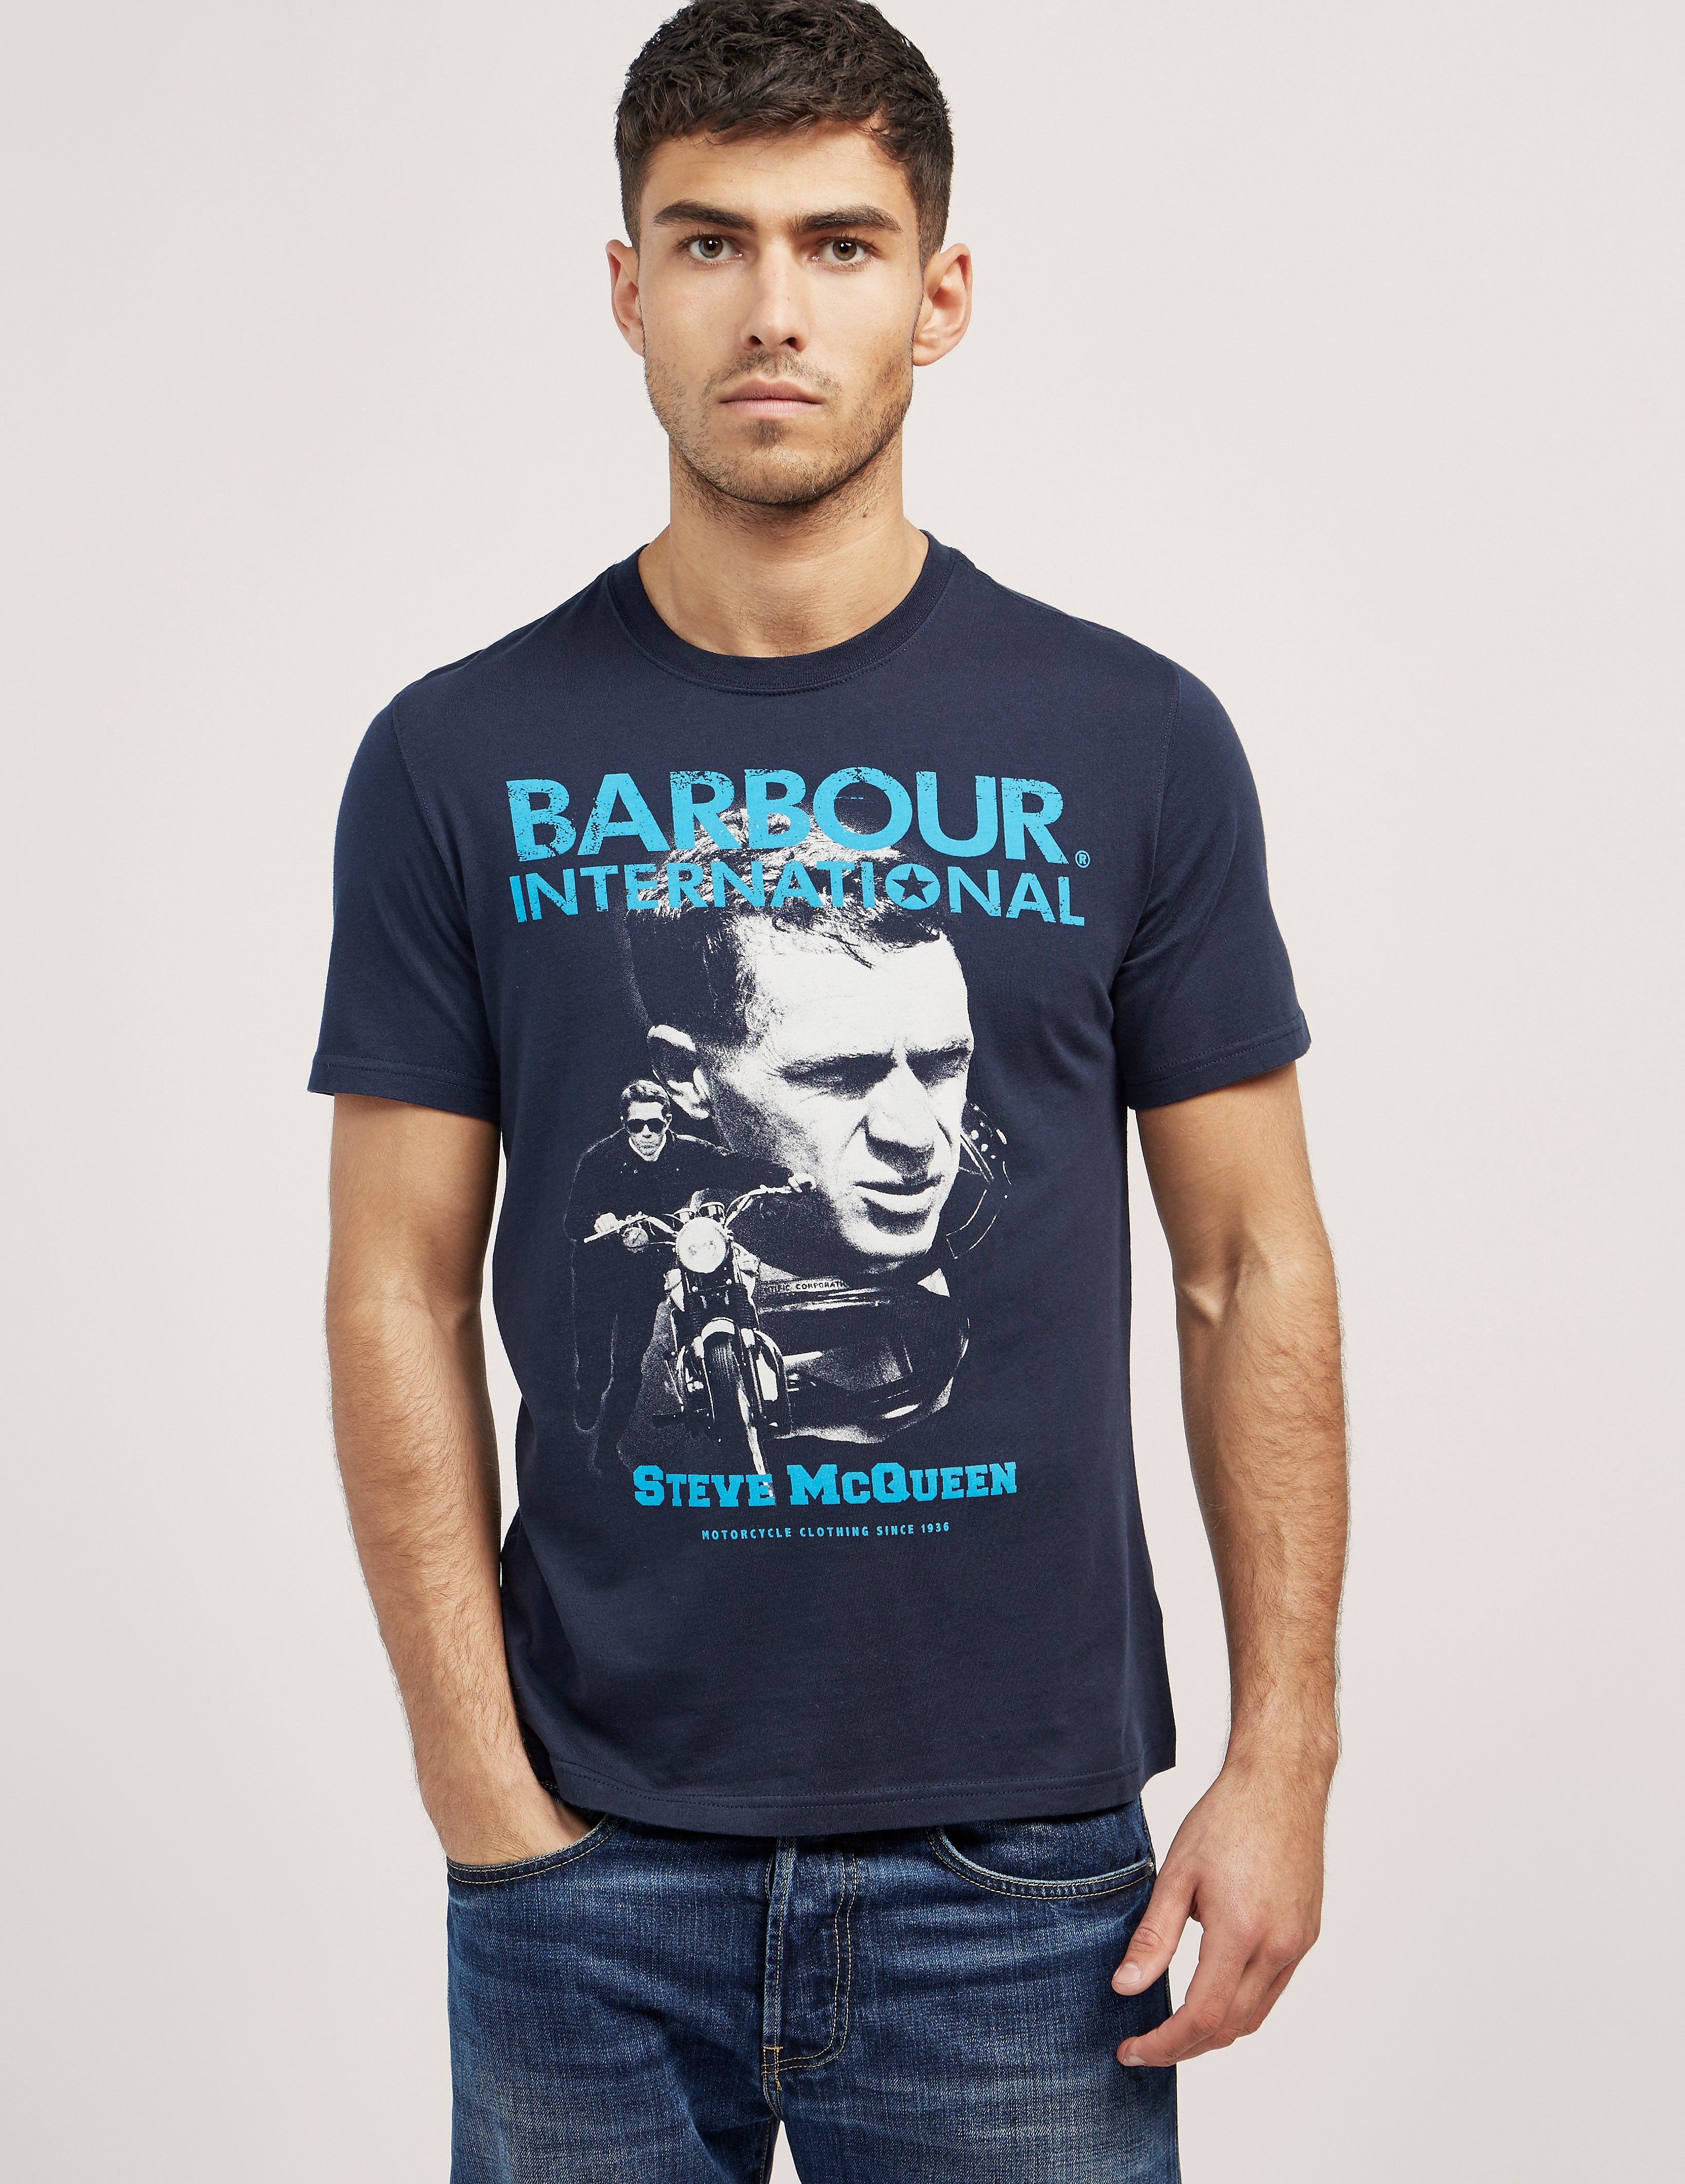 Barbour International Steve McQueen T-shirt